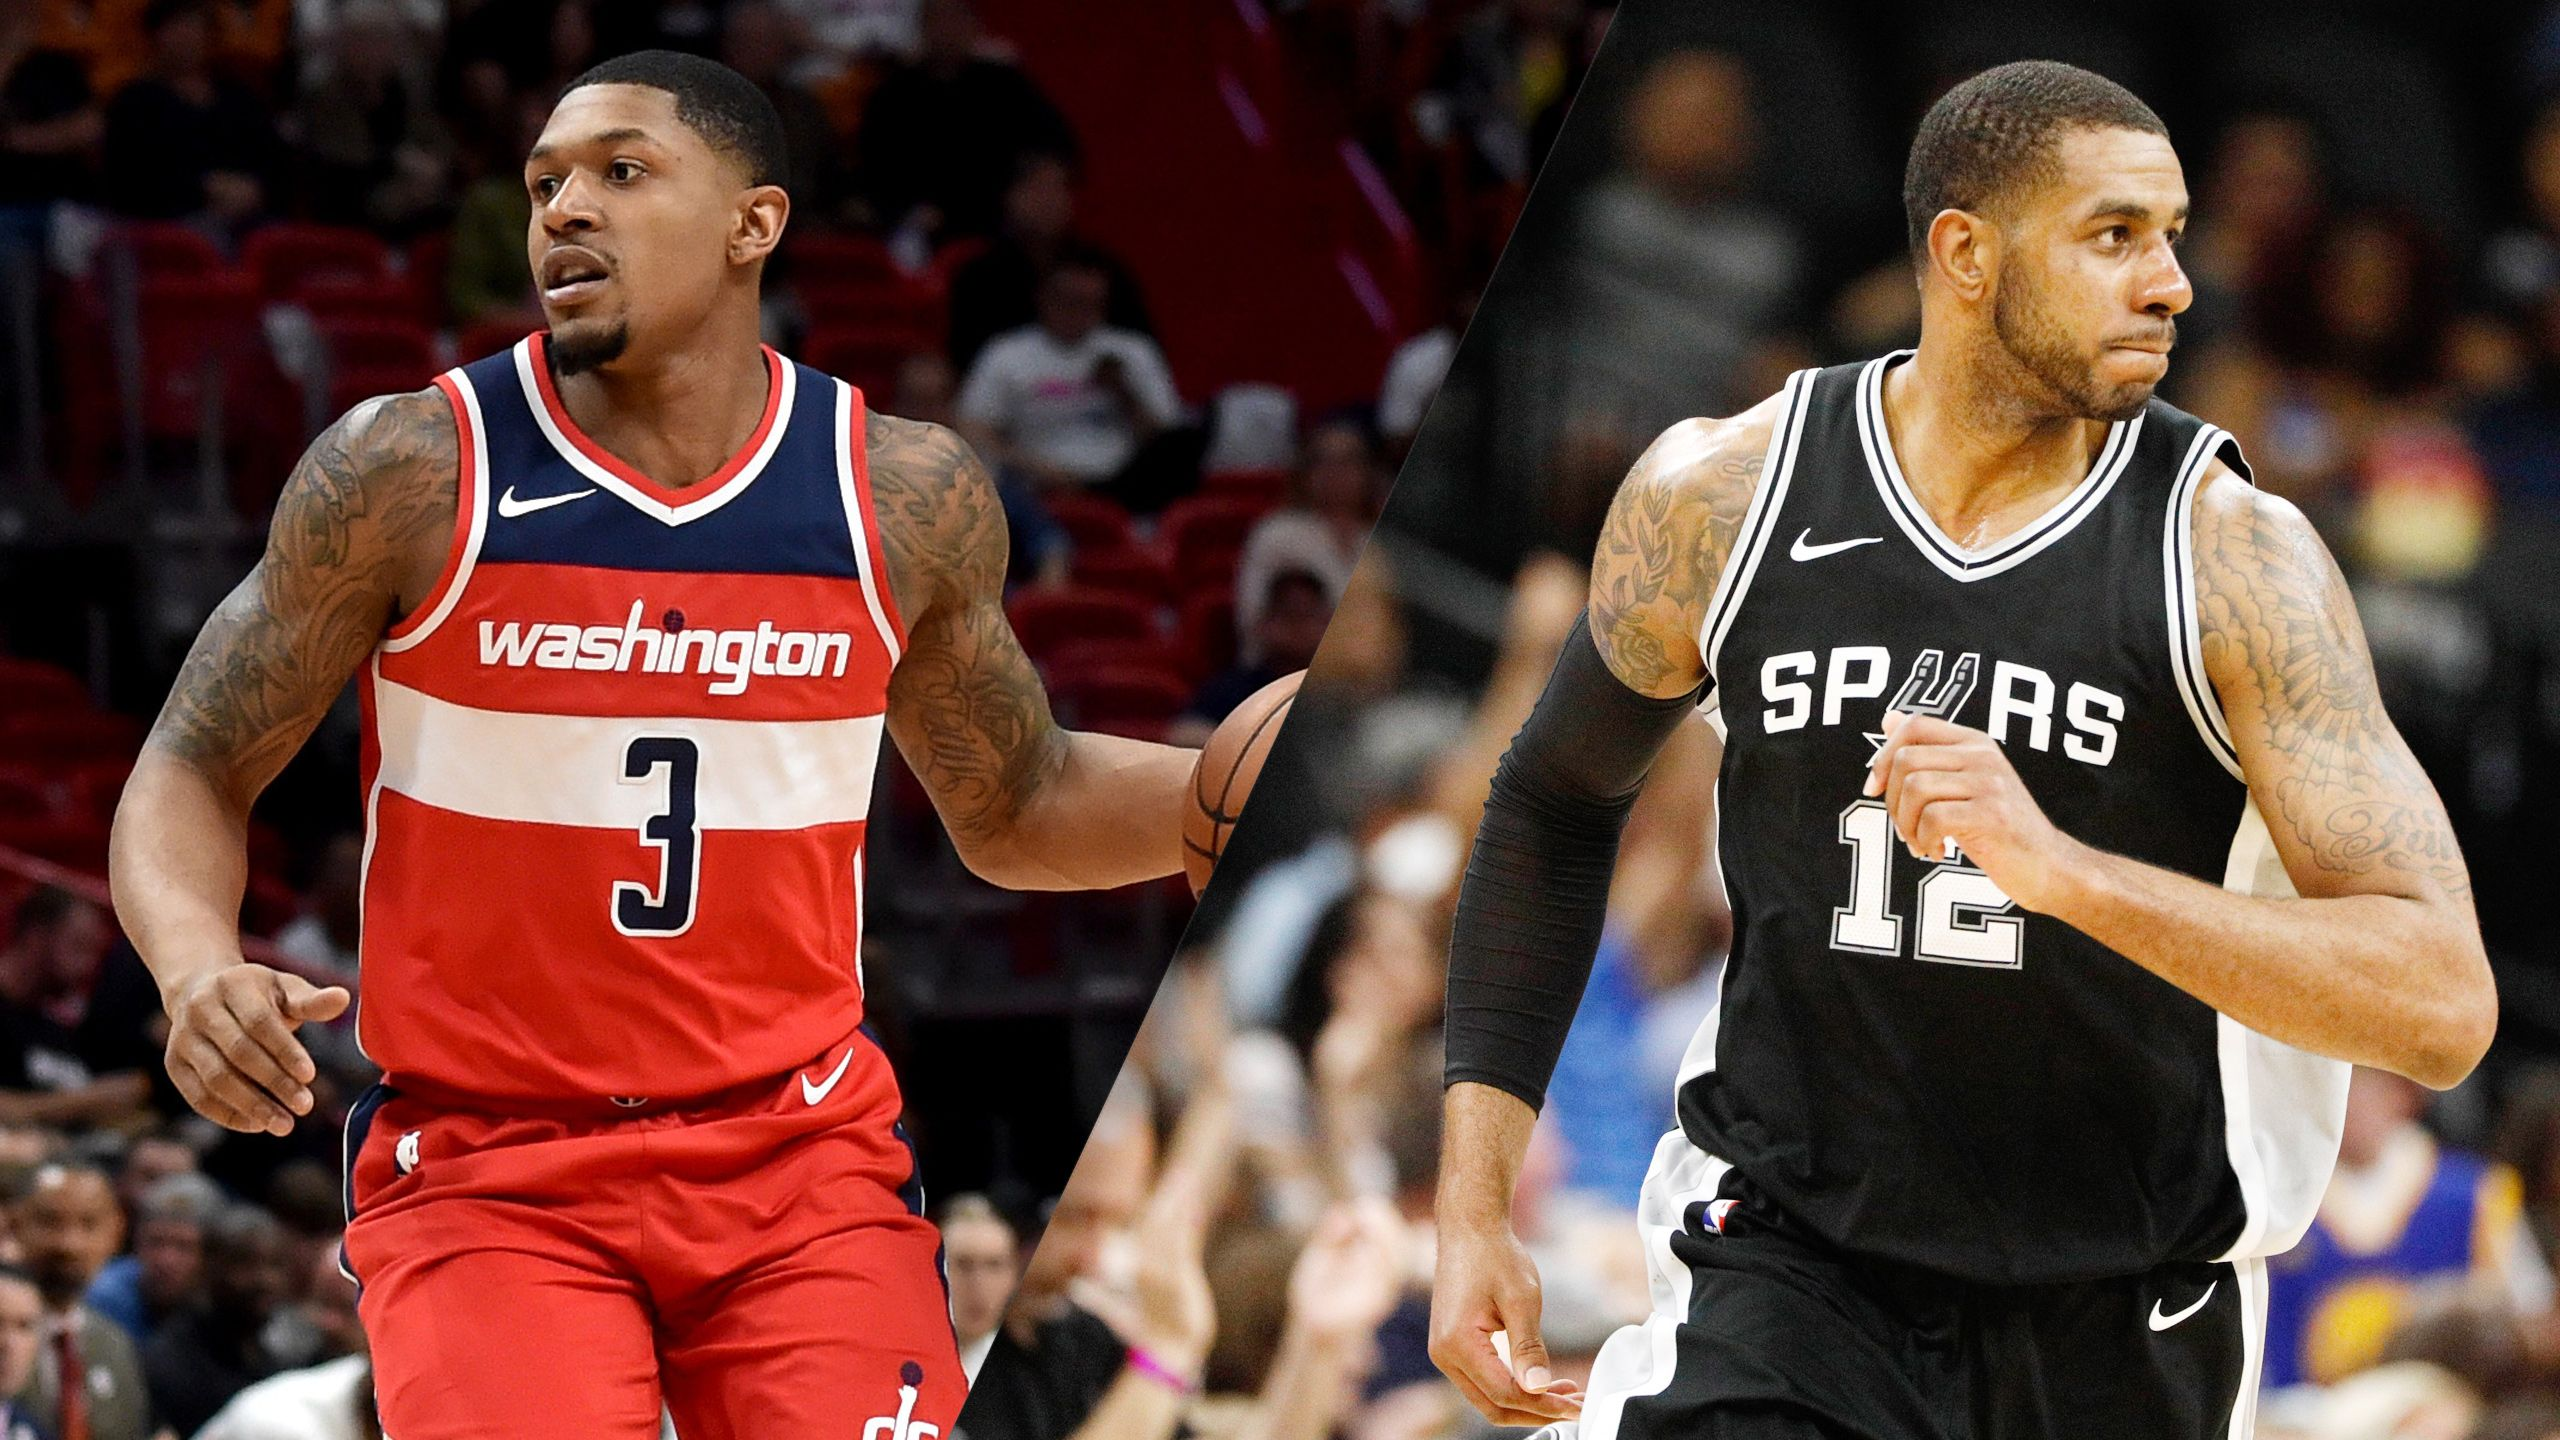 Washington Wizards vs. San Antonio Spurs